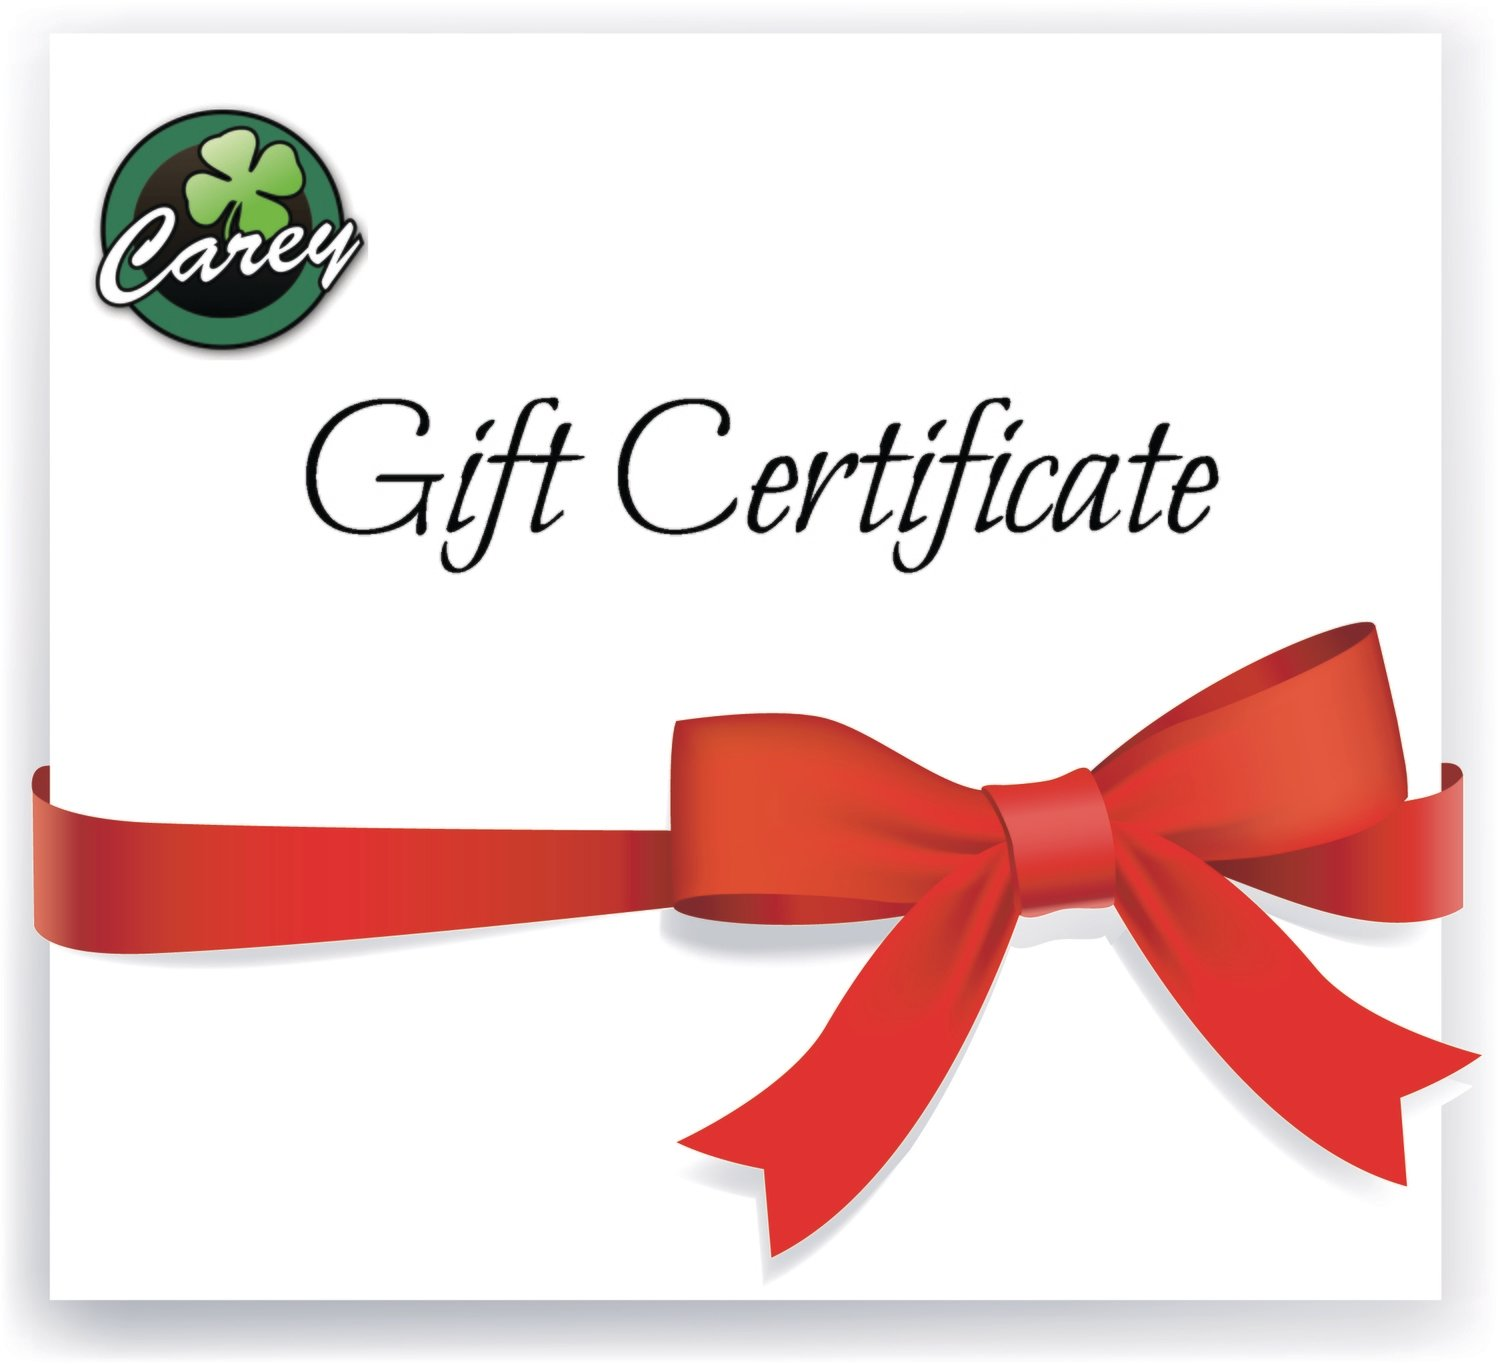 Gift Certificate from J. Carey Inc.